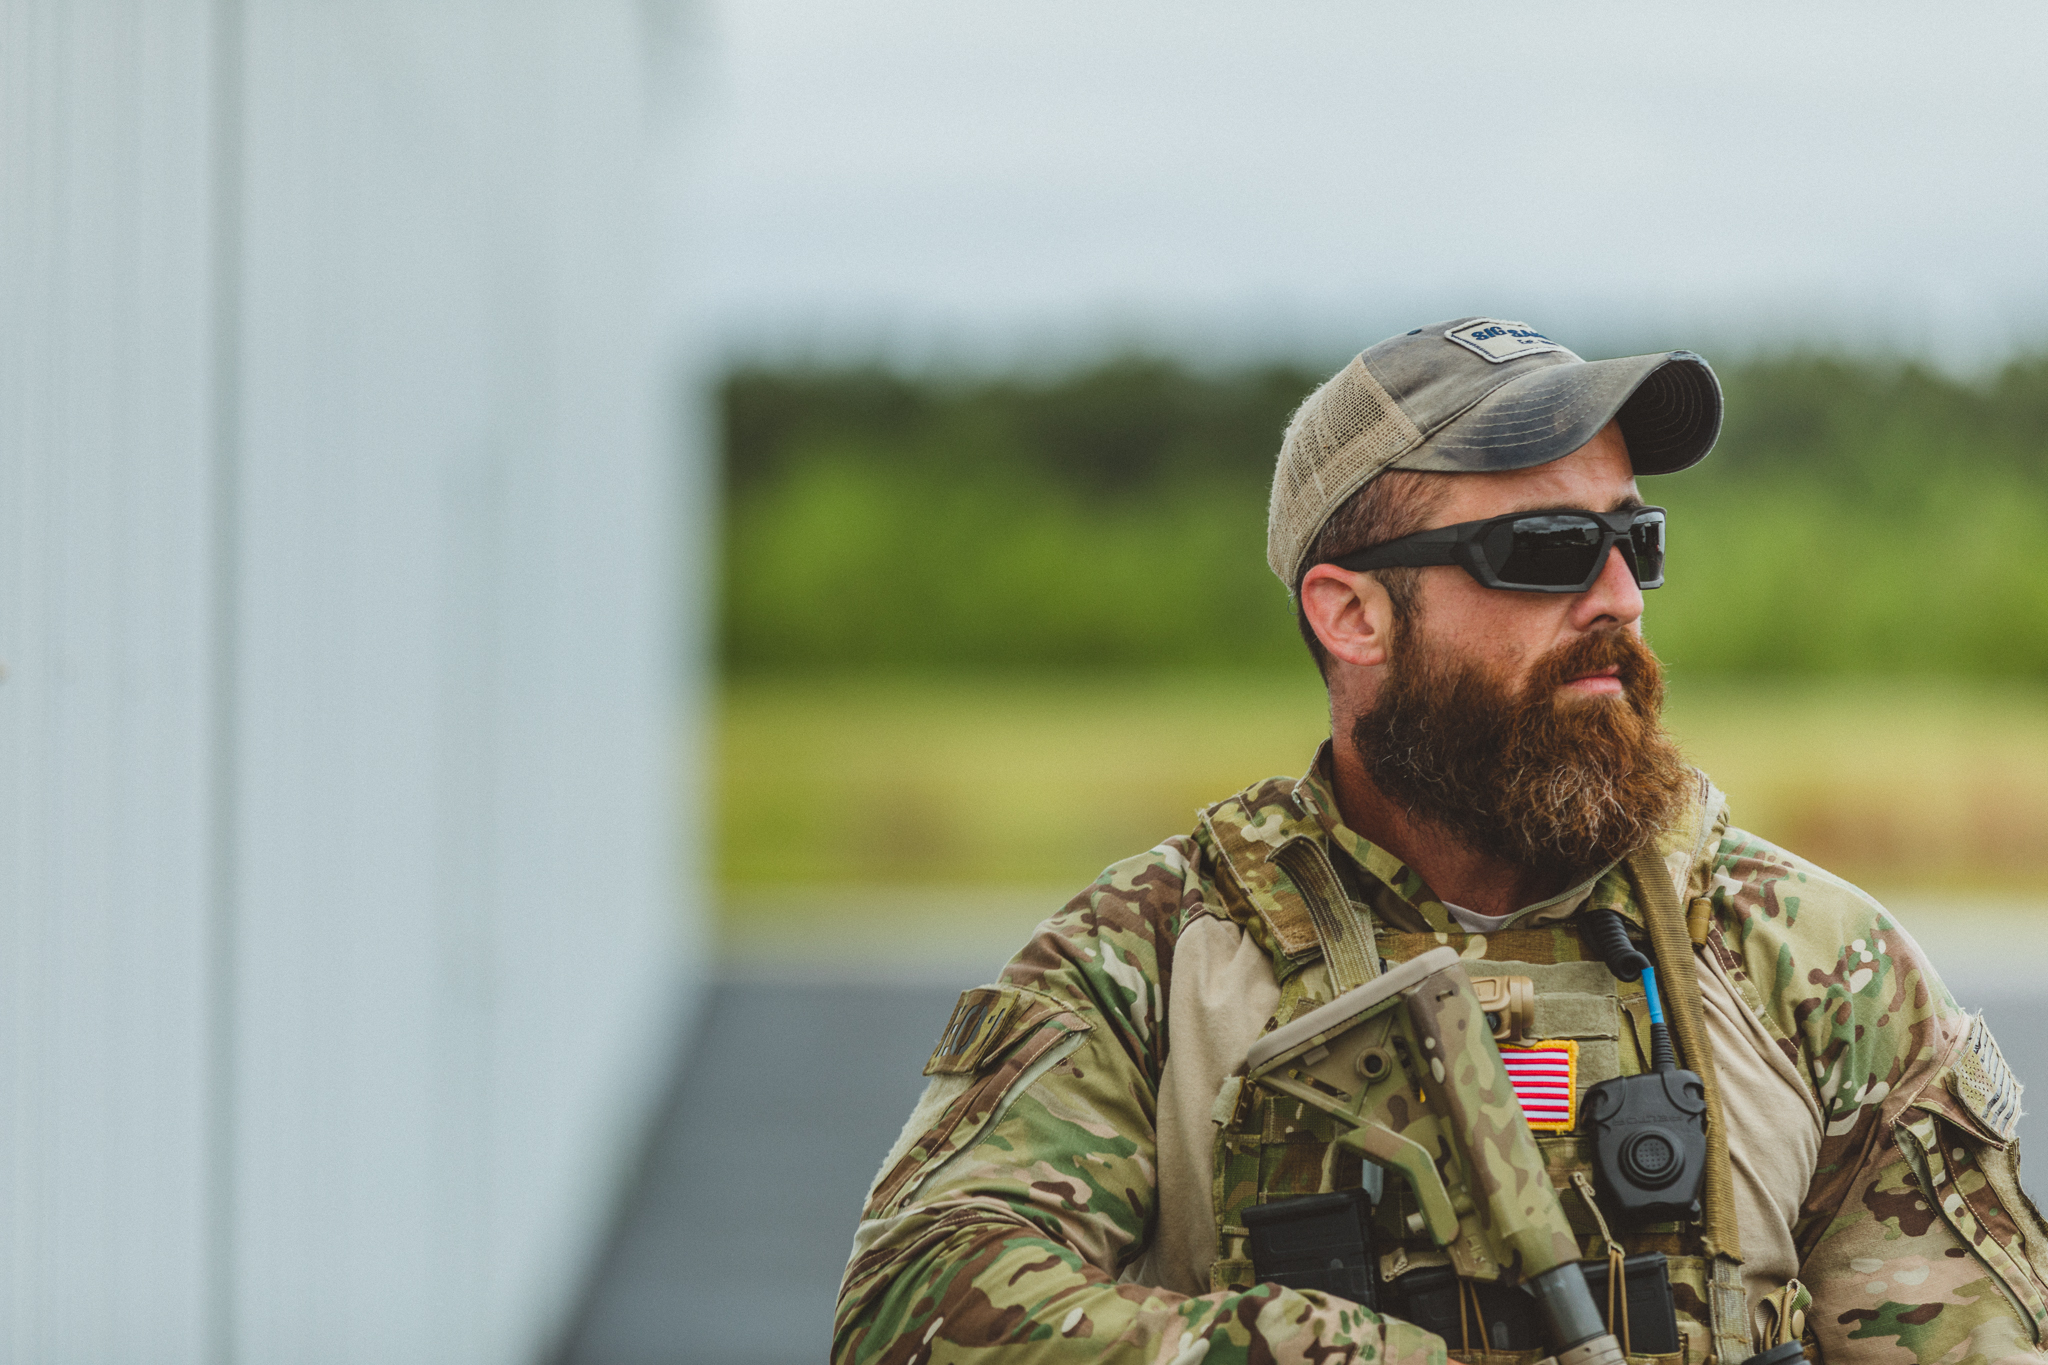 Revision's ShadowStrike™ Tactical Ballistic Sunglasses have a sharp, geometrical wraparound design that provides unobstructed field-of-vision and ballistic protection for fast-paced tactical, special ops, and military operations.